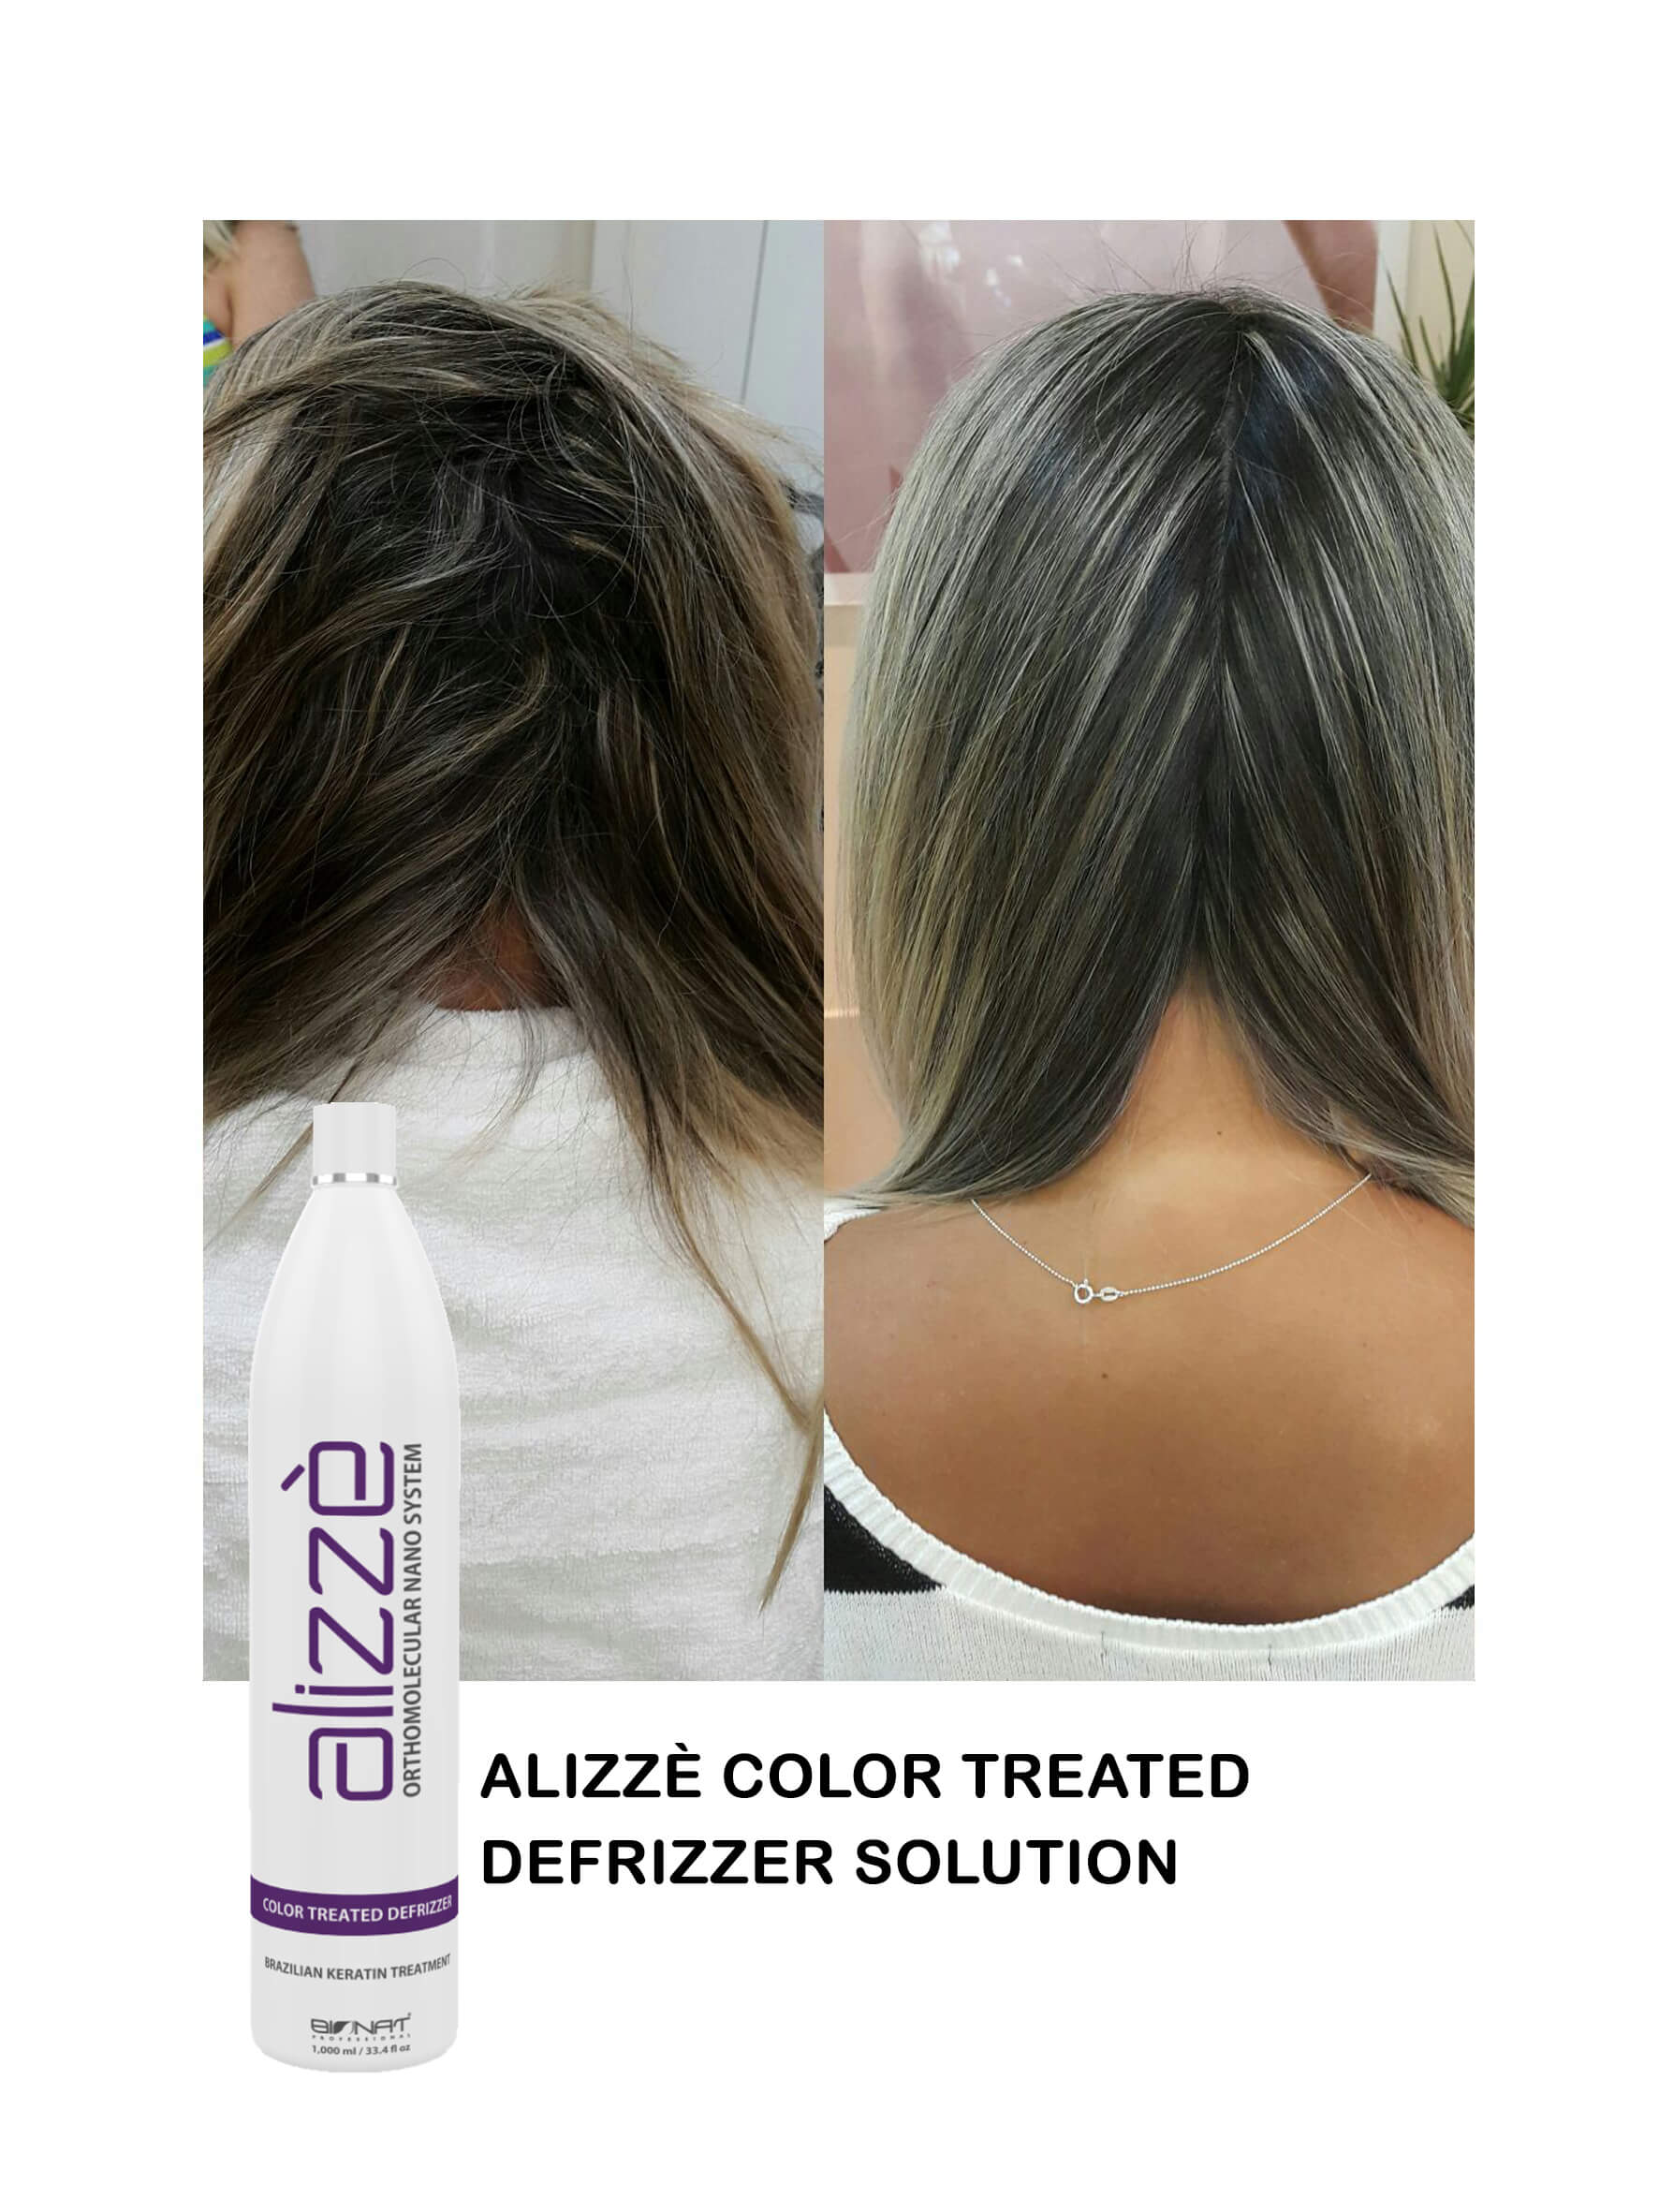 Alizzè Color Treadted Defrizzer Solution